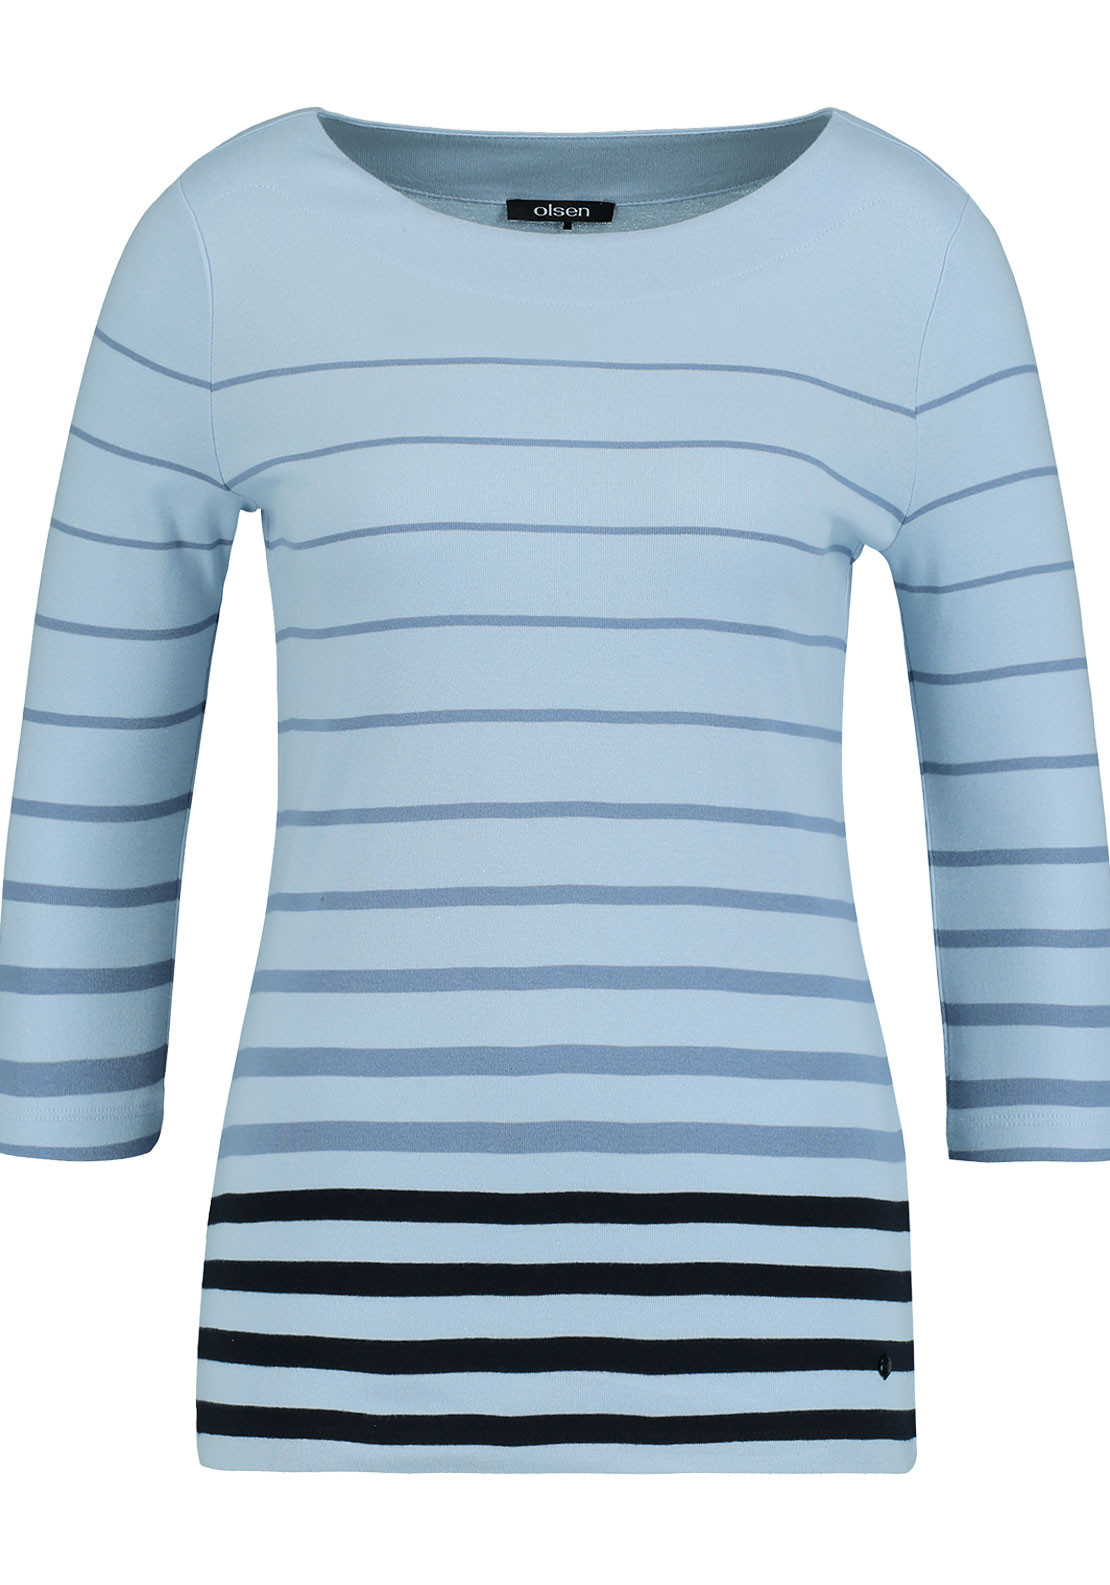 Olsen Striped Cropped Sleeve Top, Blue